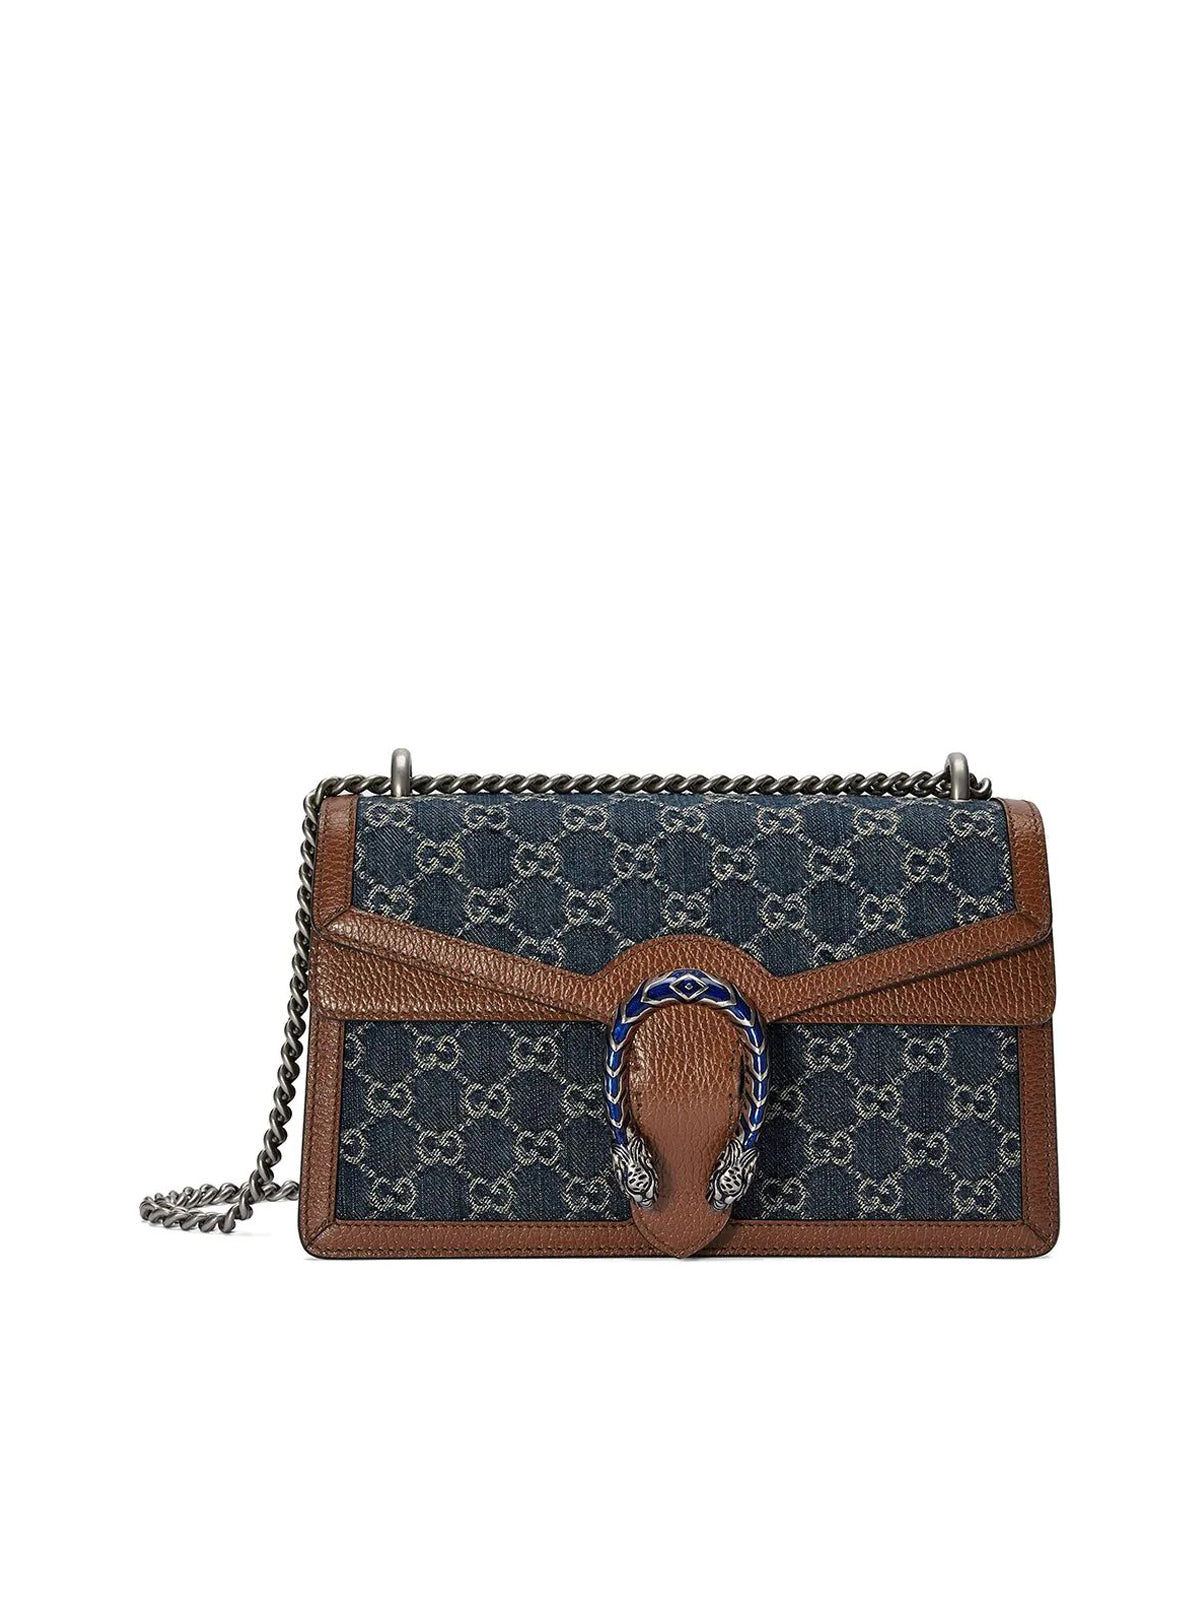 Dionysus shoulder bag